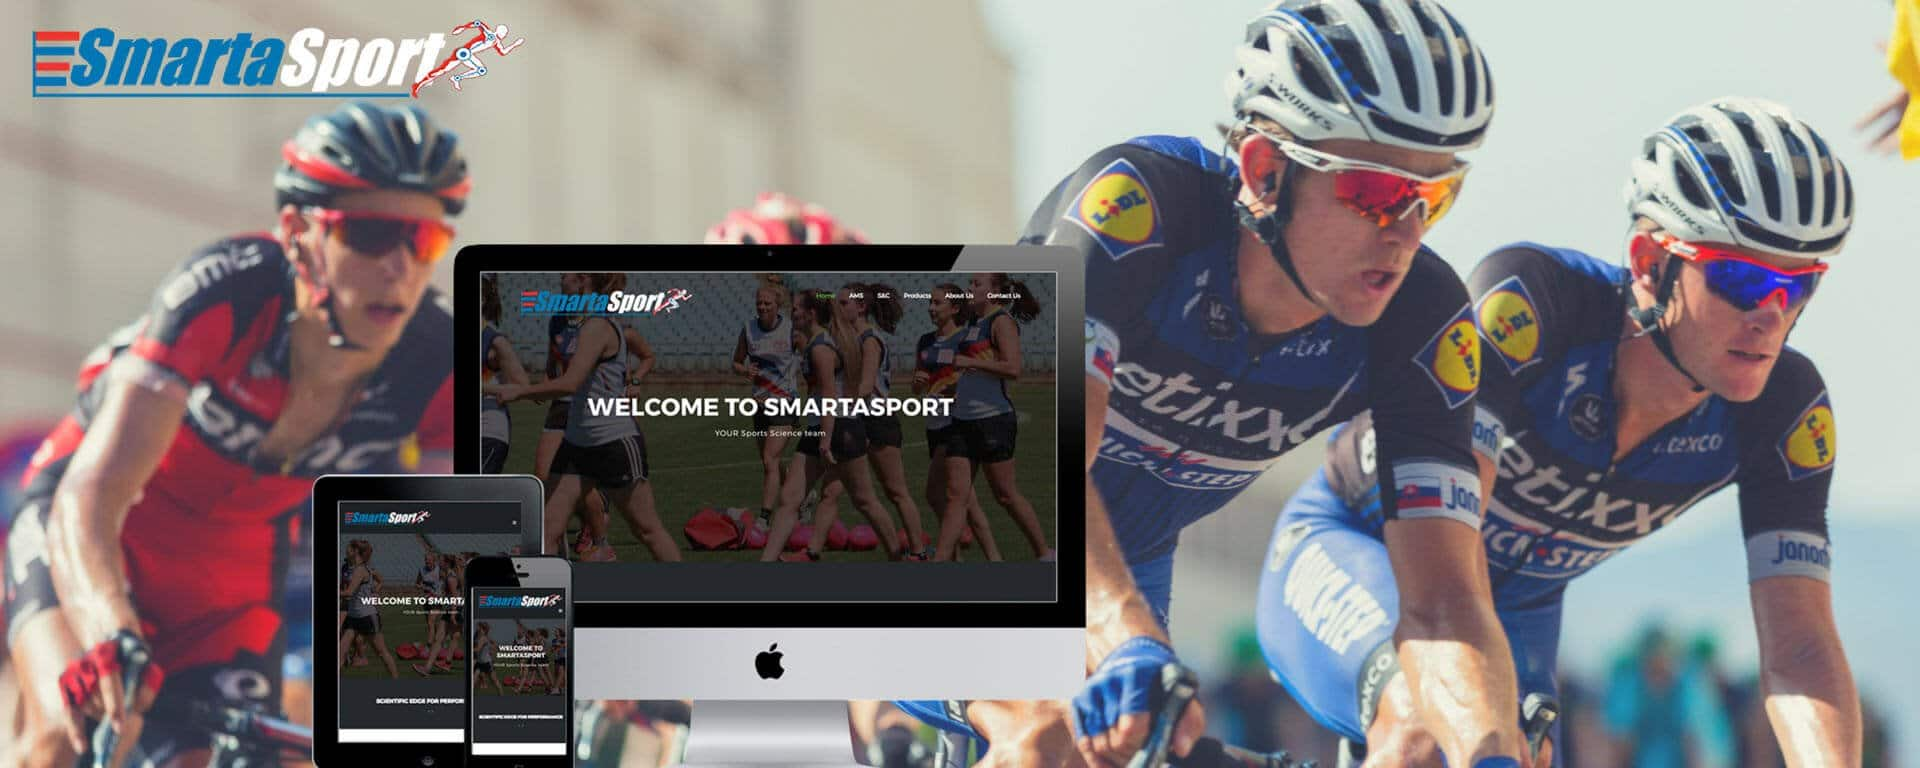 Smartasport website design